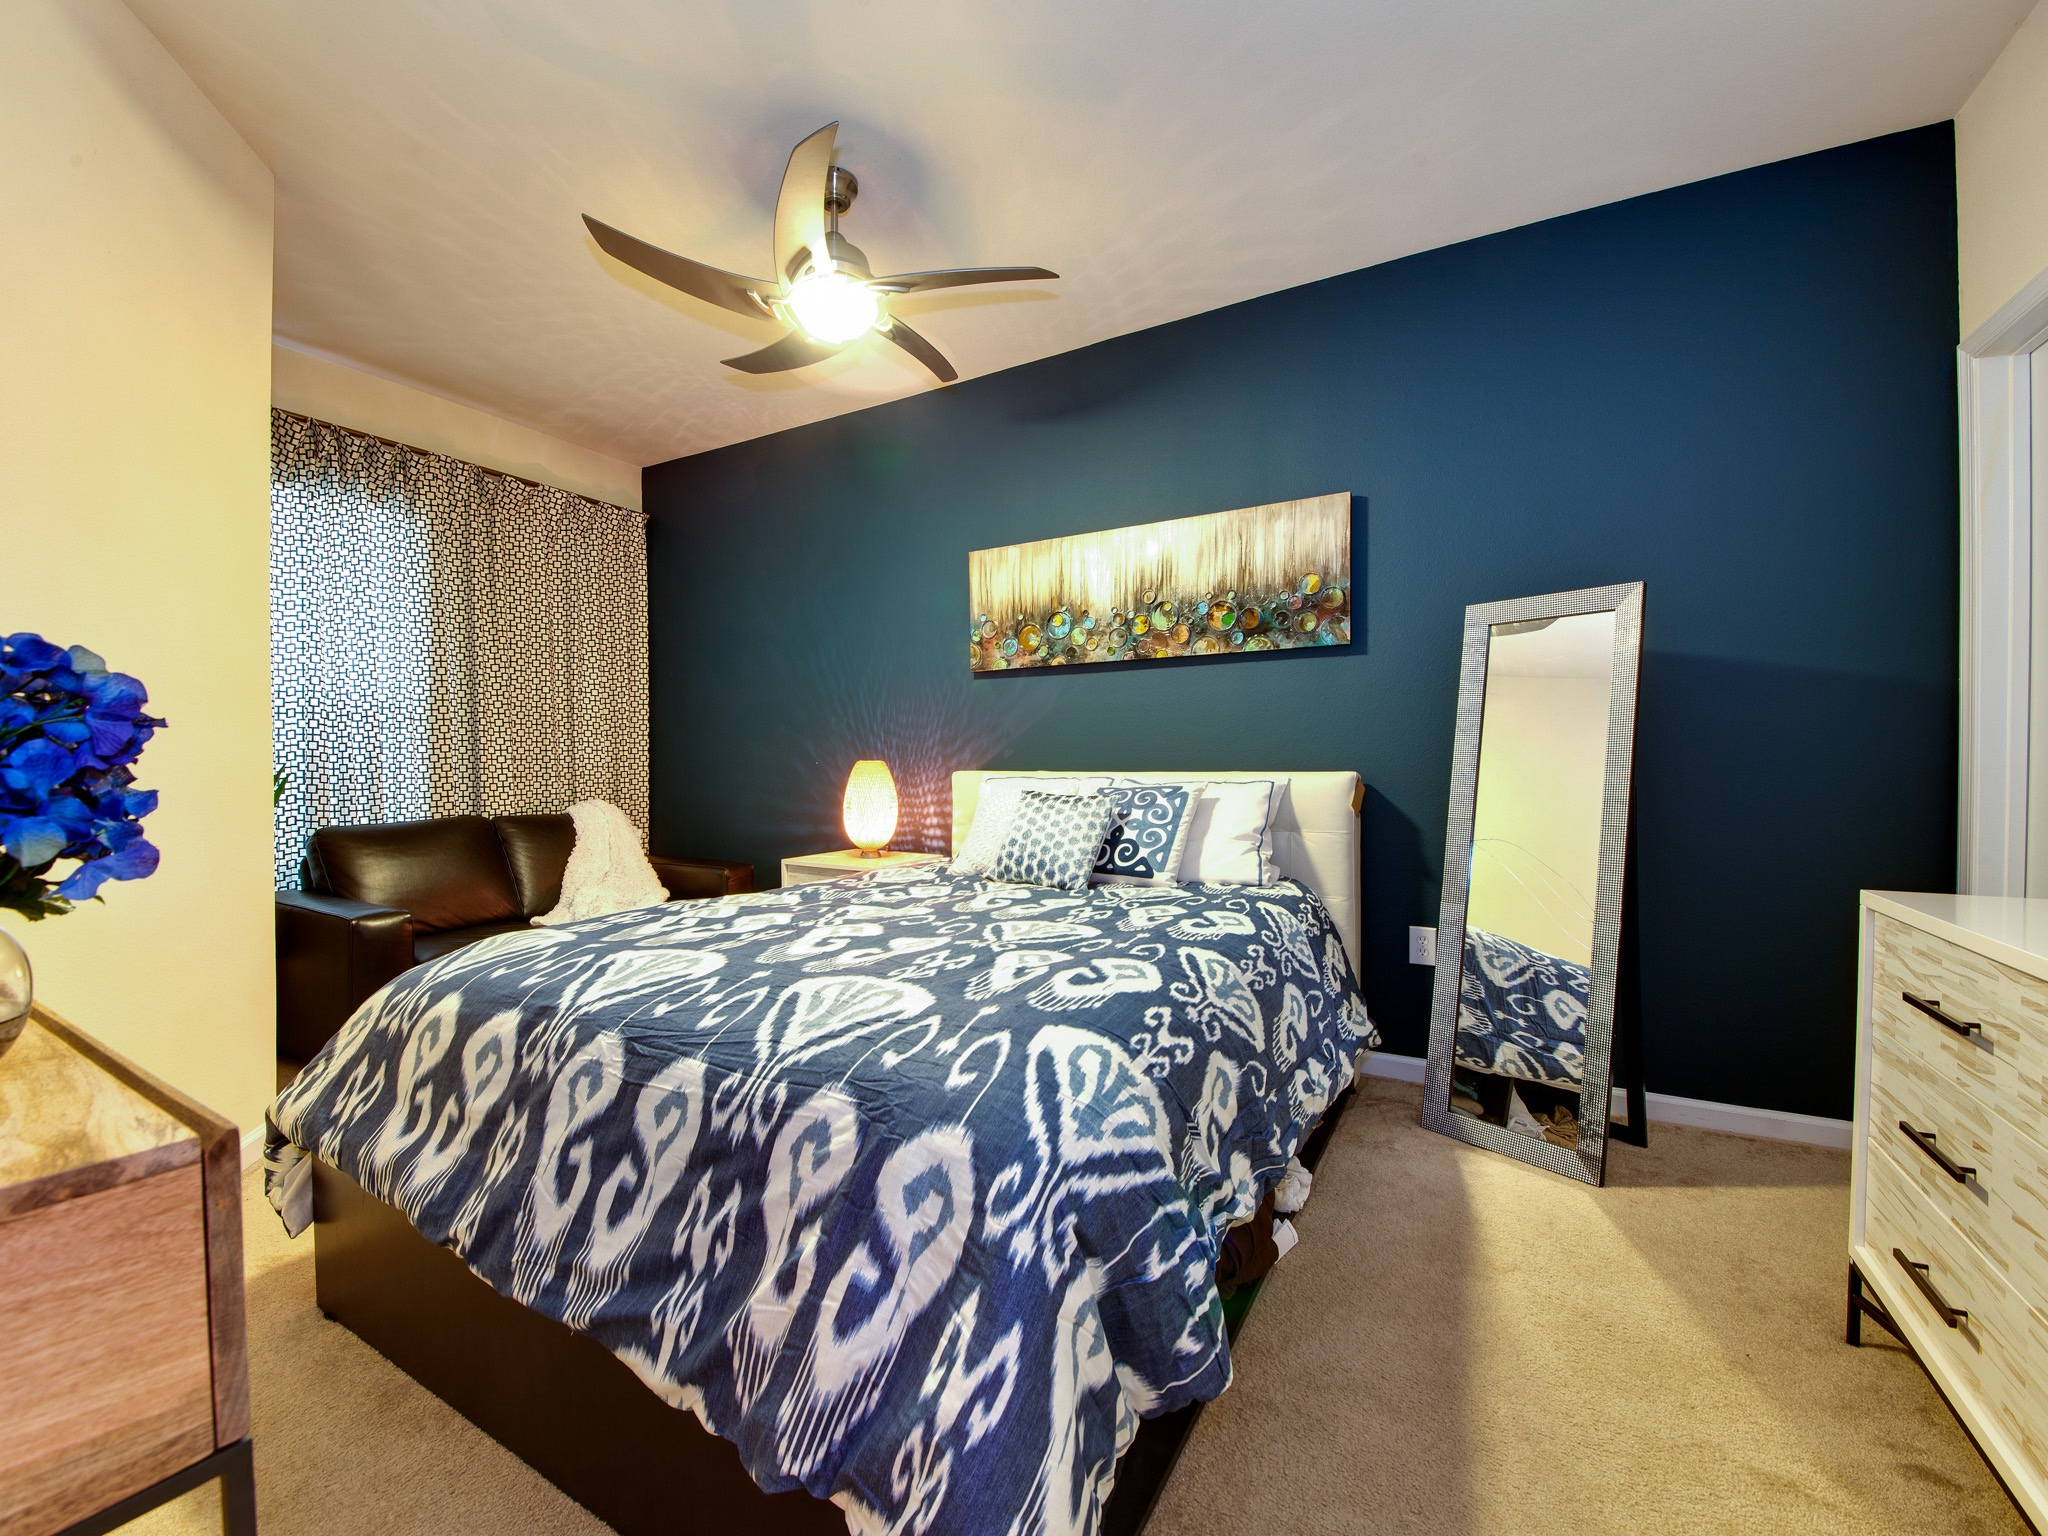 Peacock Themed Bedroom With Luxurious Feeling 16414